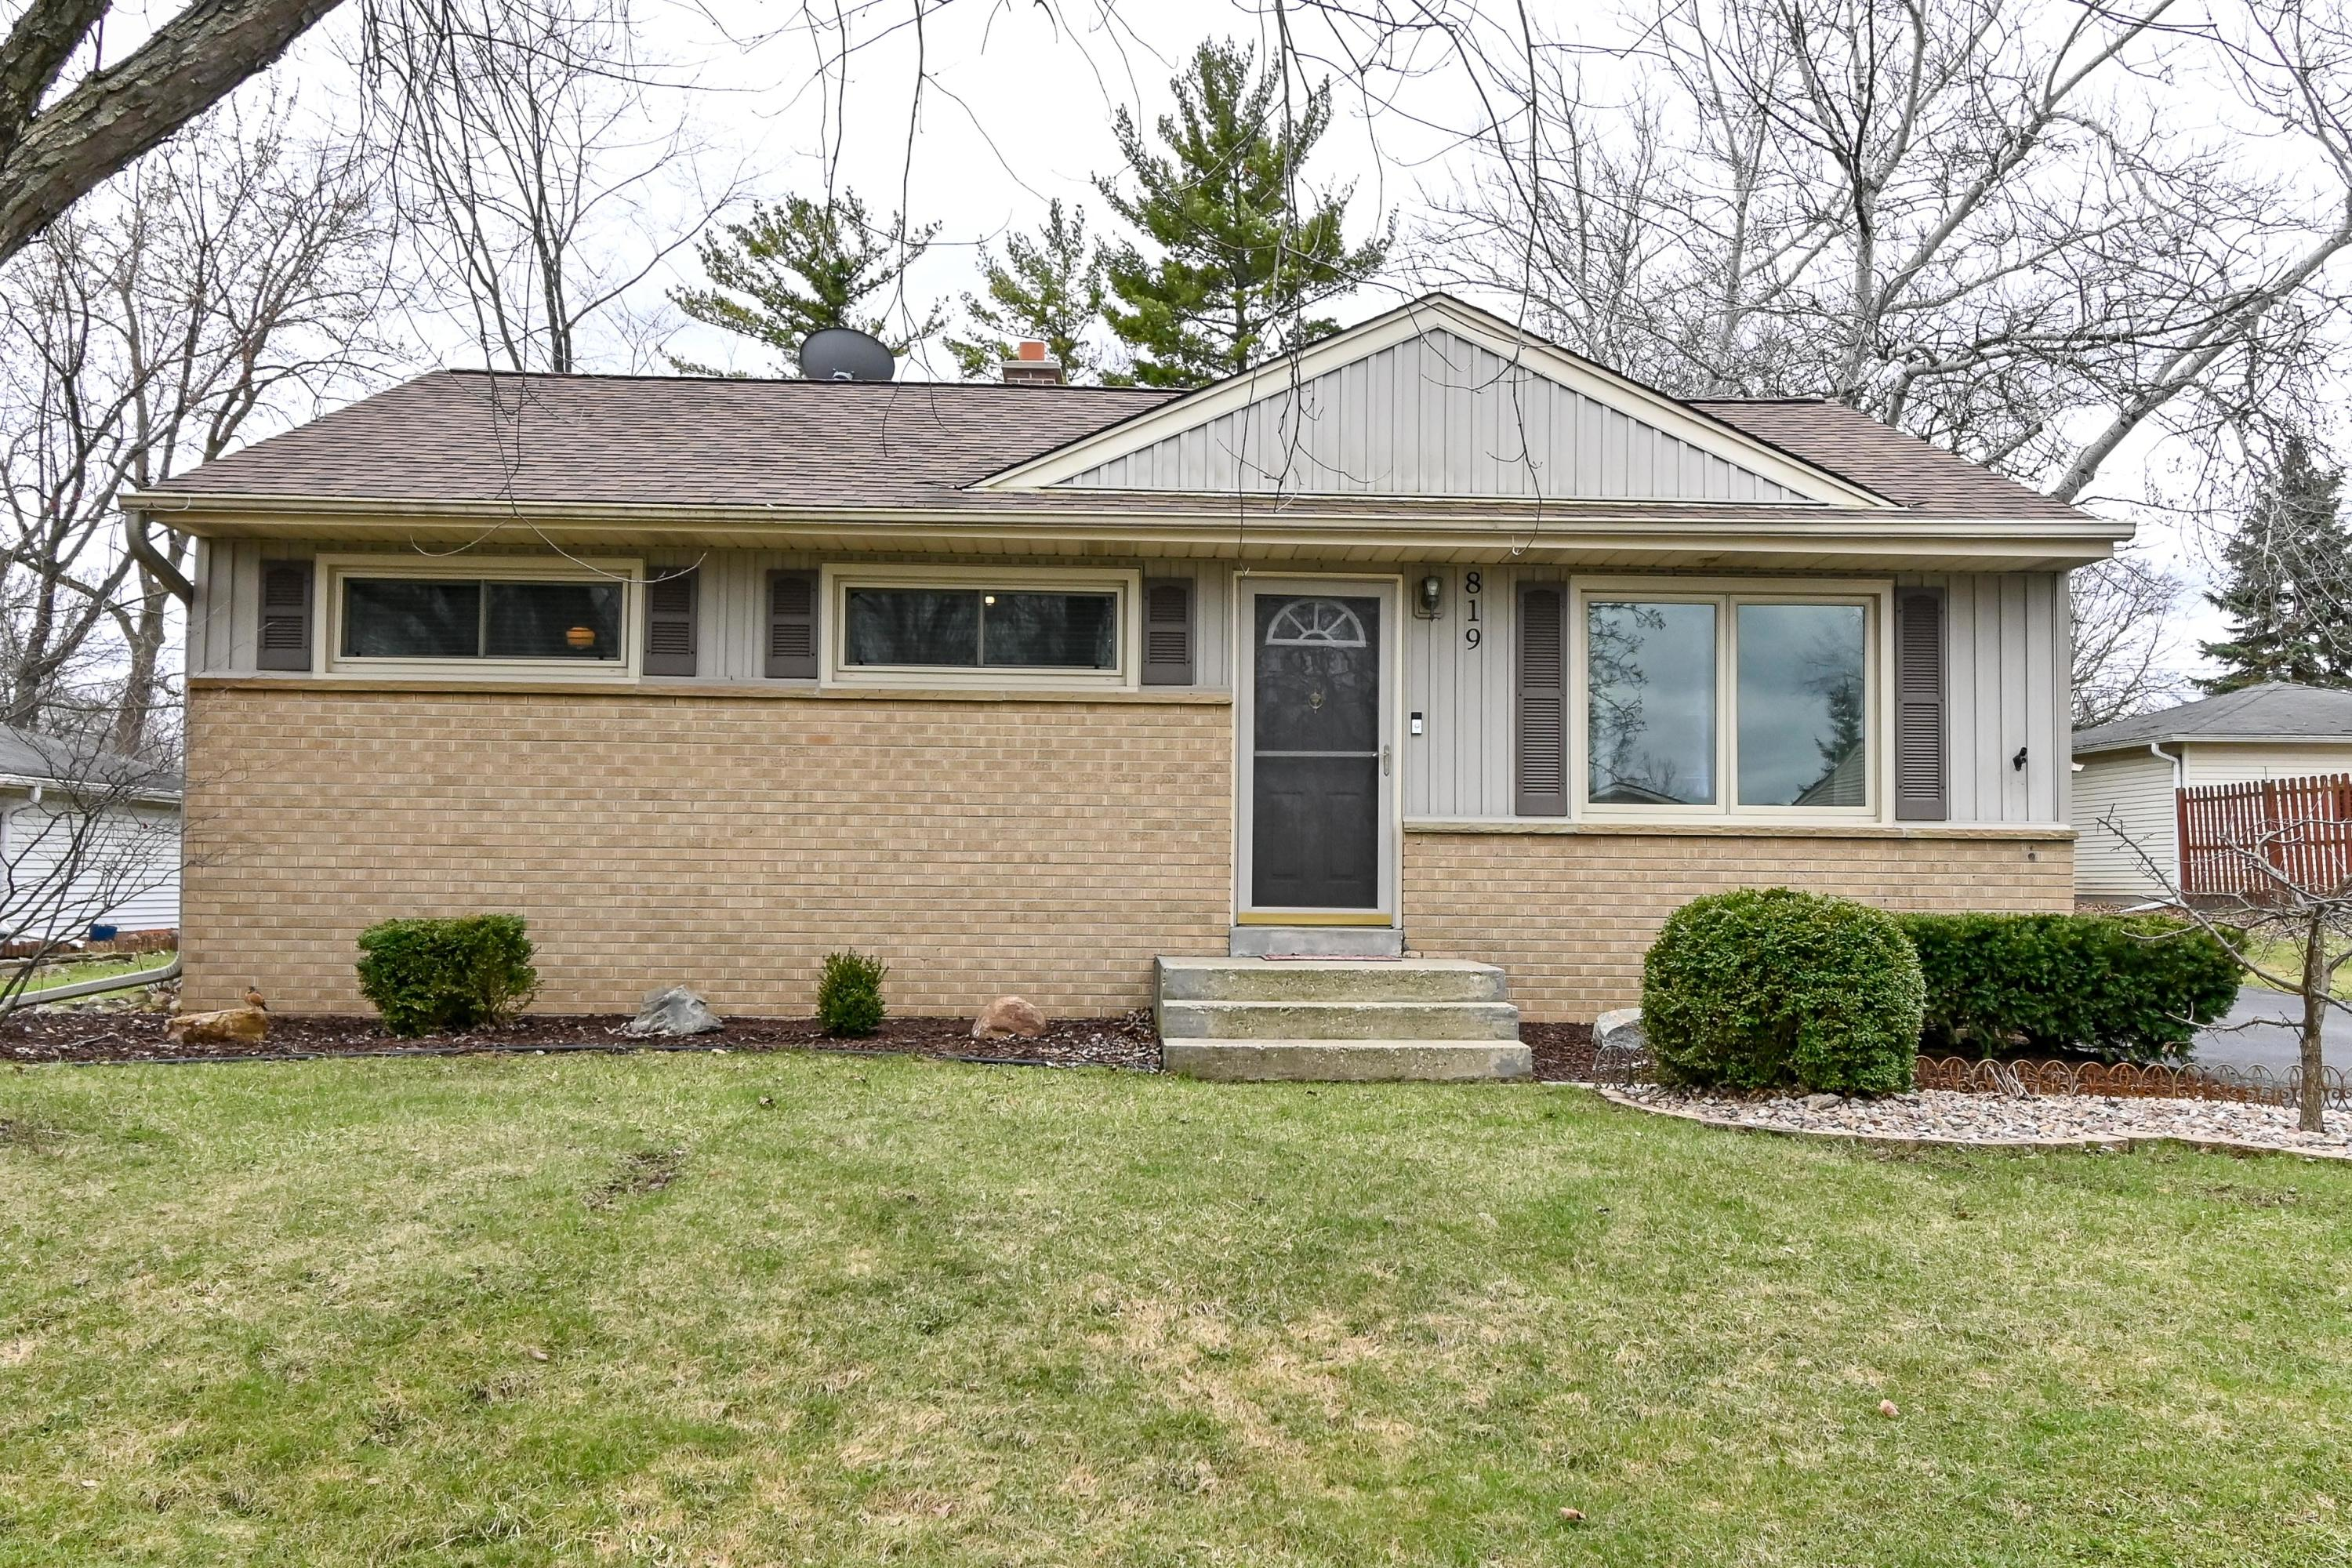 819 Evert St, Pewaukee, Wisconsin 53072, 3 Bedrooms Bedrooms, ,2 BathroomsBathrooms,Single-Family,For Sale,Evert St,1683353